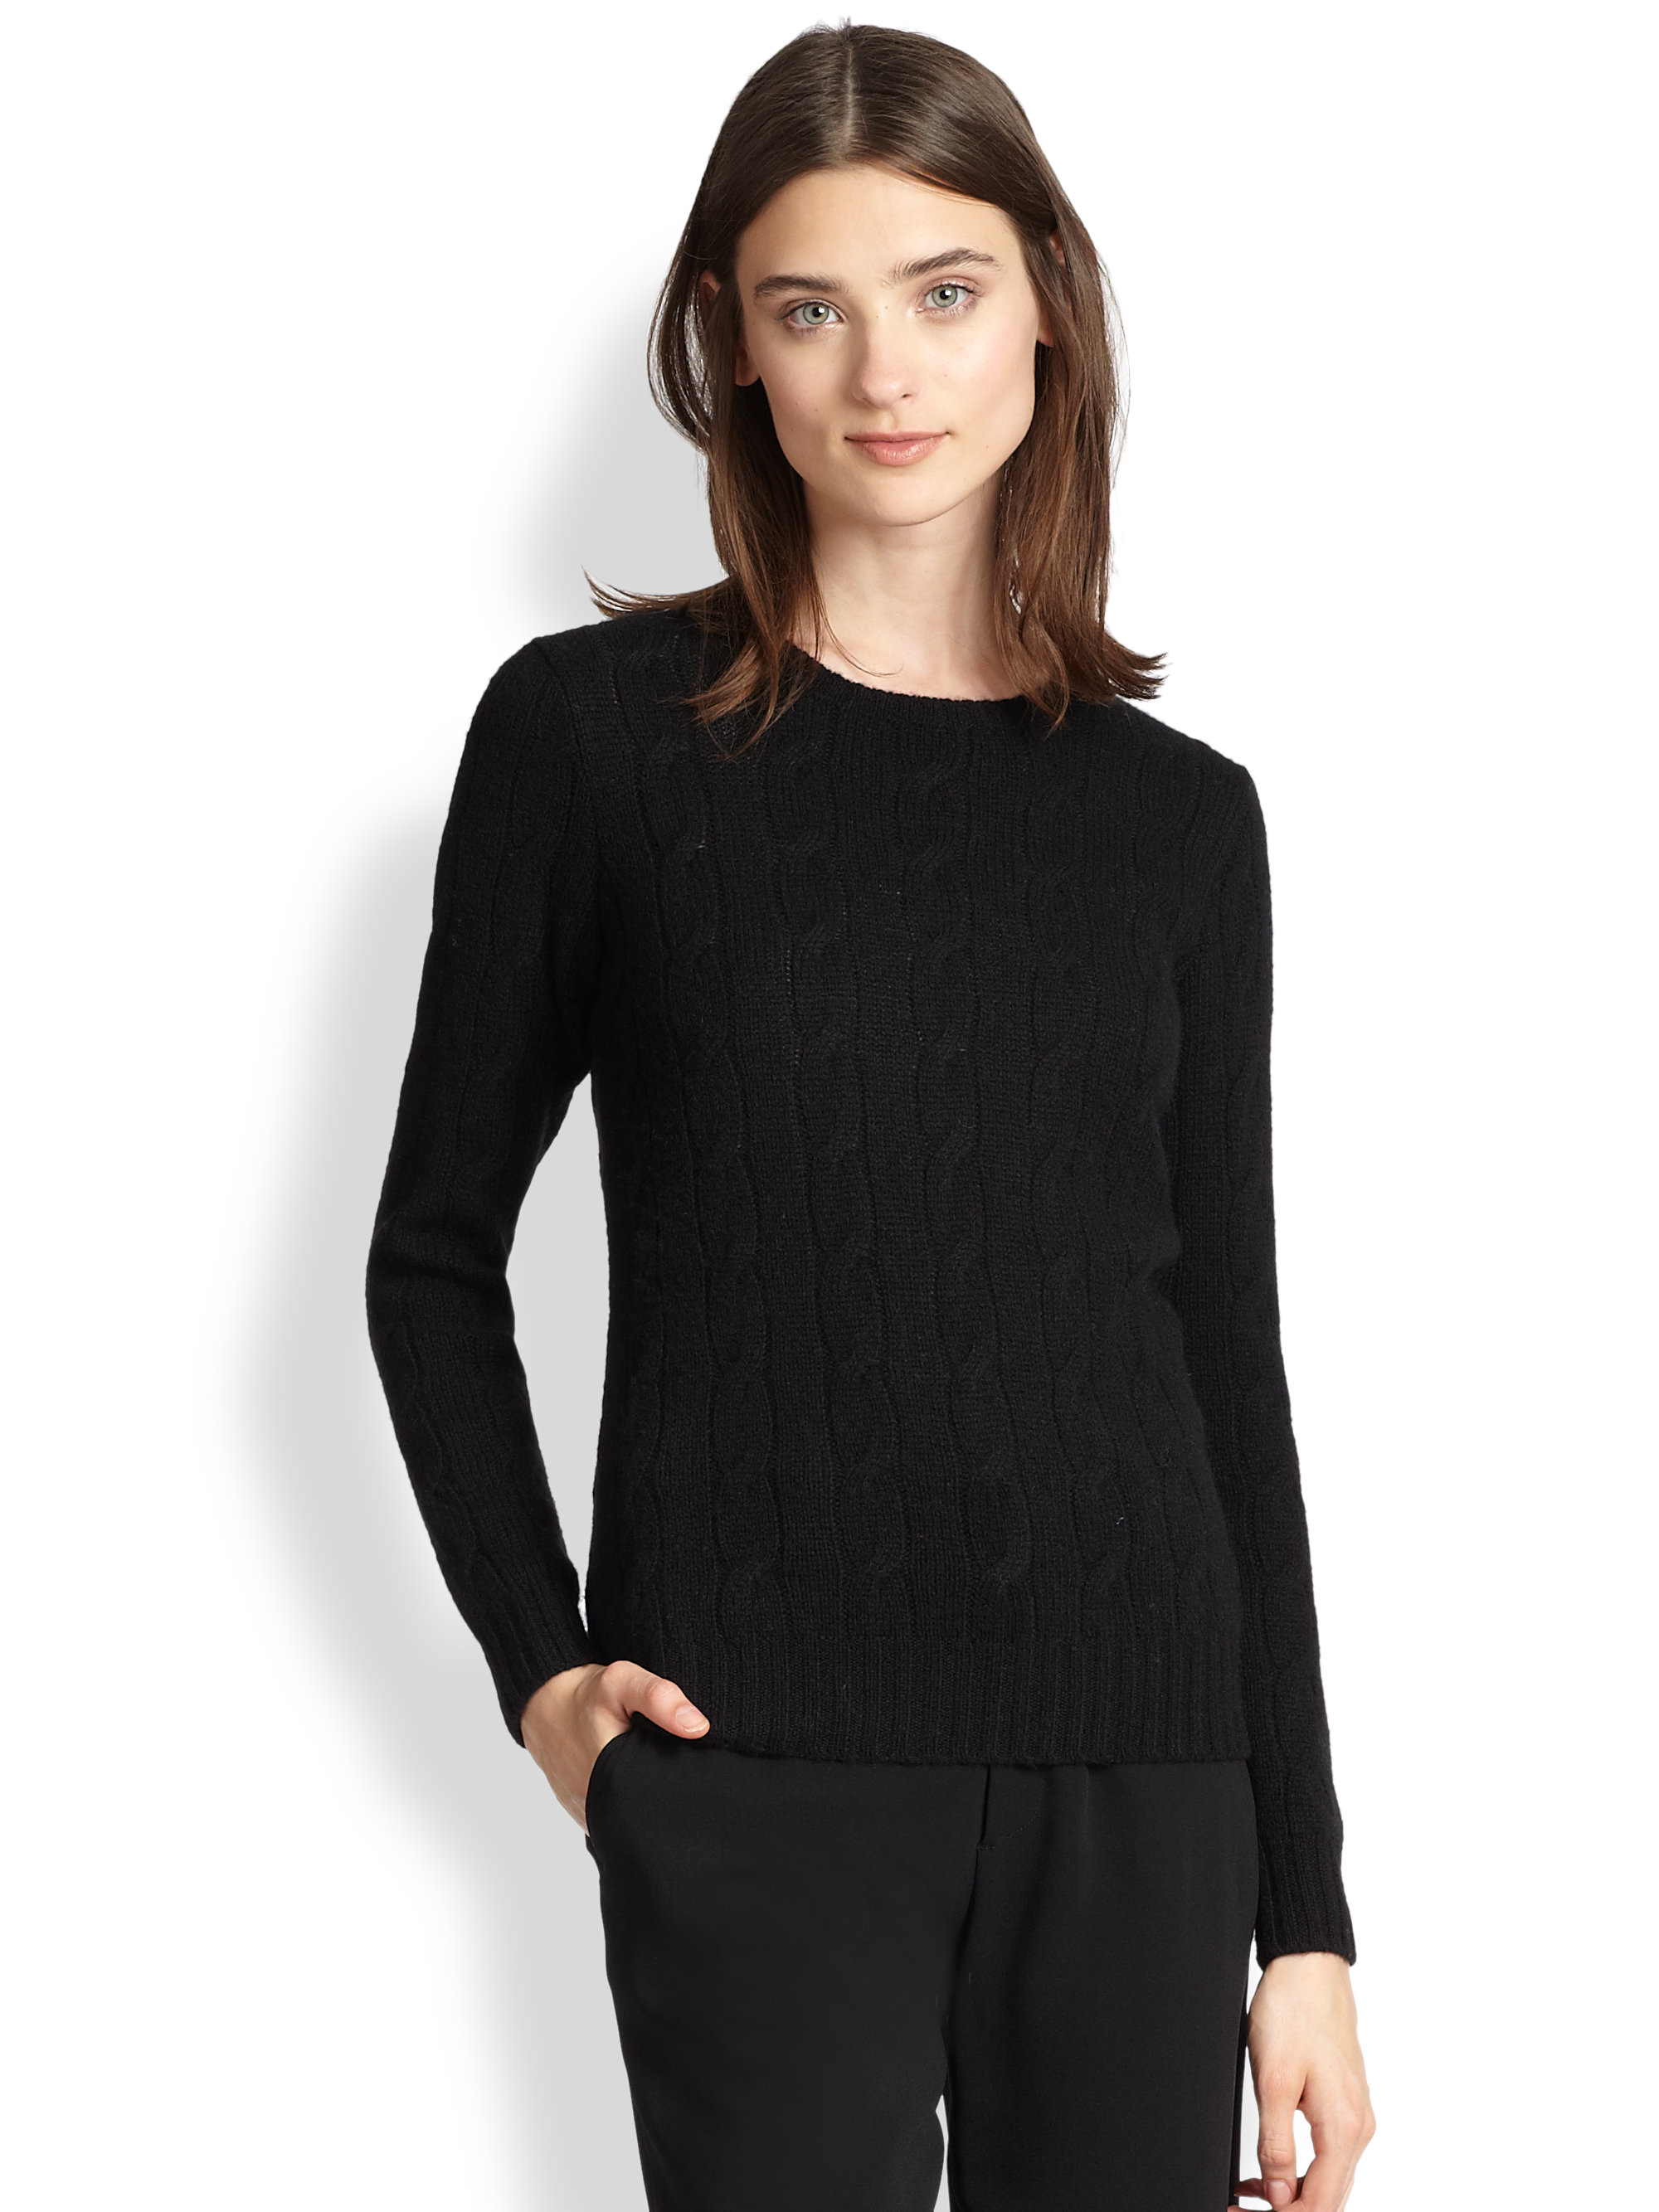 Ralph lauren black label Cable-knit Cashmere Sweater in Black | Lyst